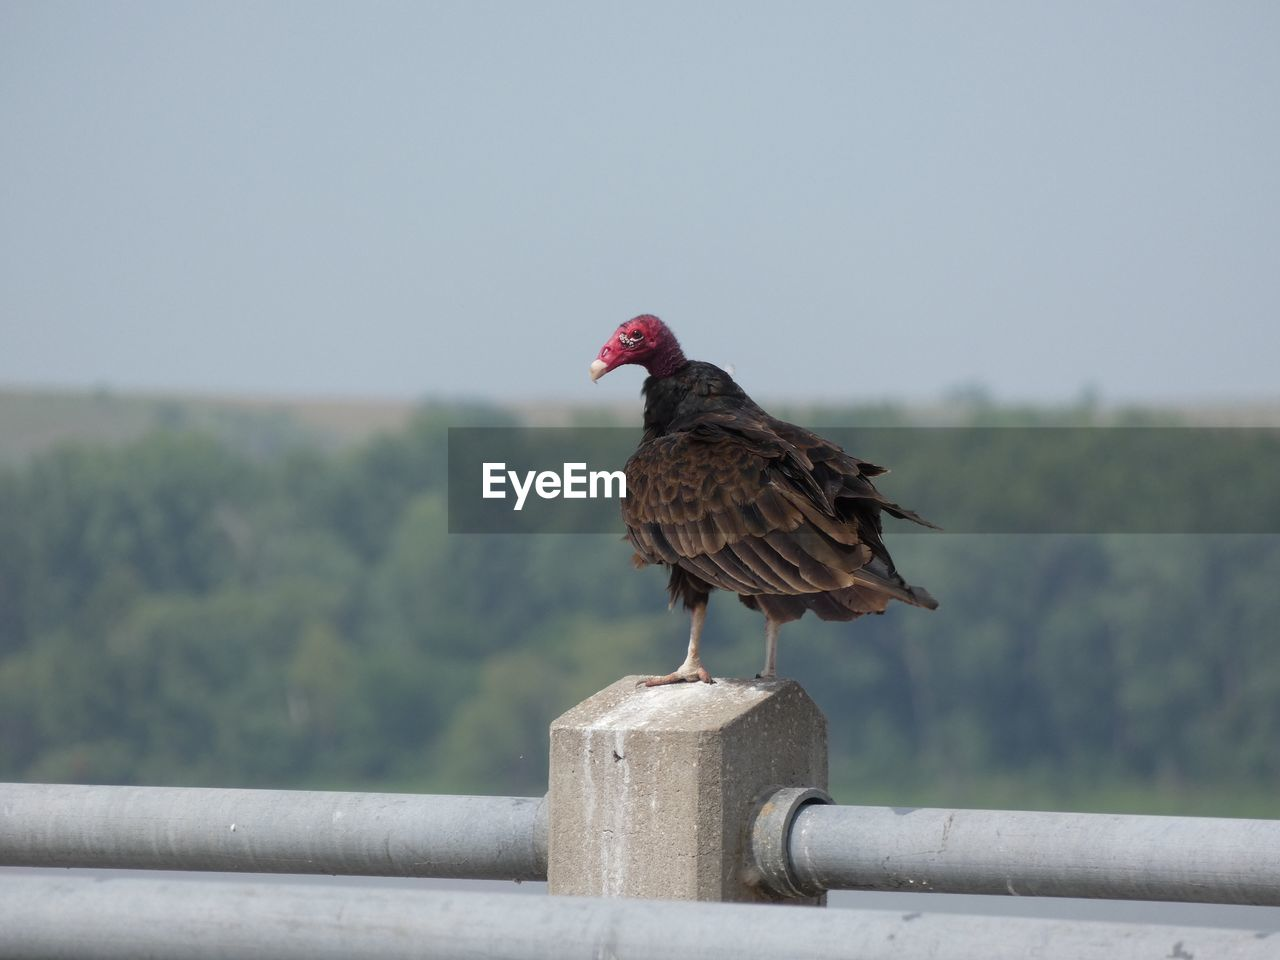 bird, vertebrate, perching, animal themes, animal, focus on foreground, one animal, animals in the wild, day, sky, wood - material, animal wildlife, nature, no people, railing, post, clear sky, full length, wooden post, outdoors